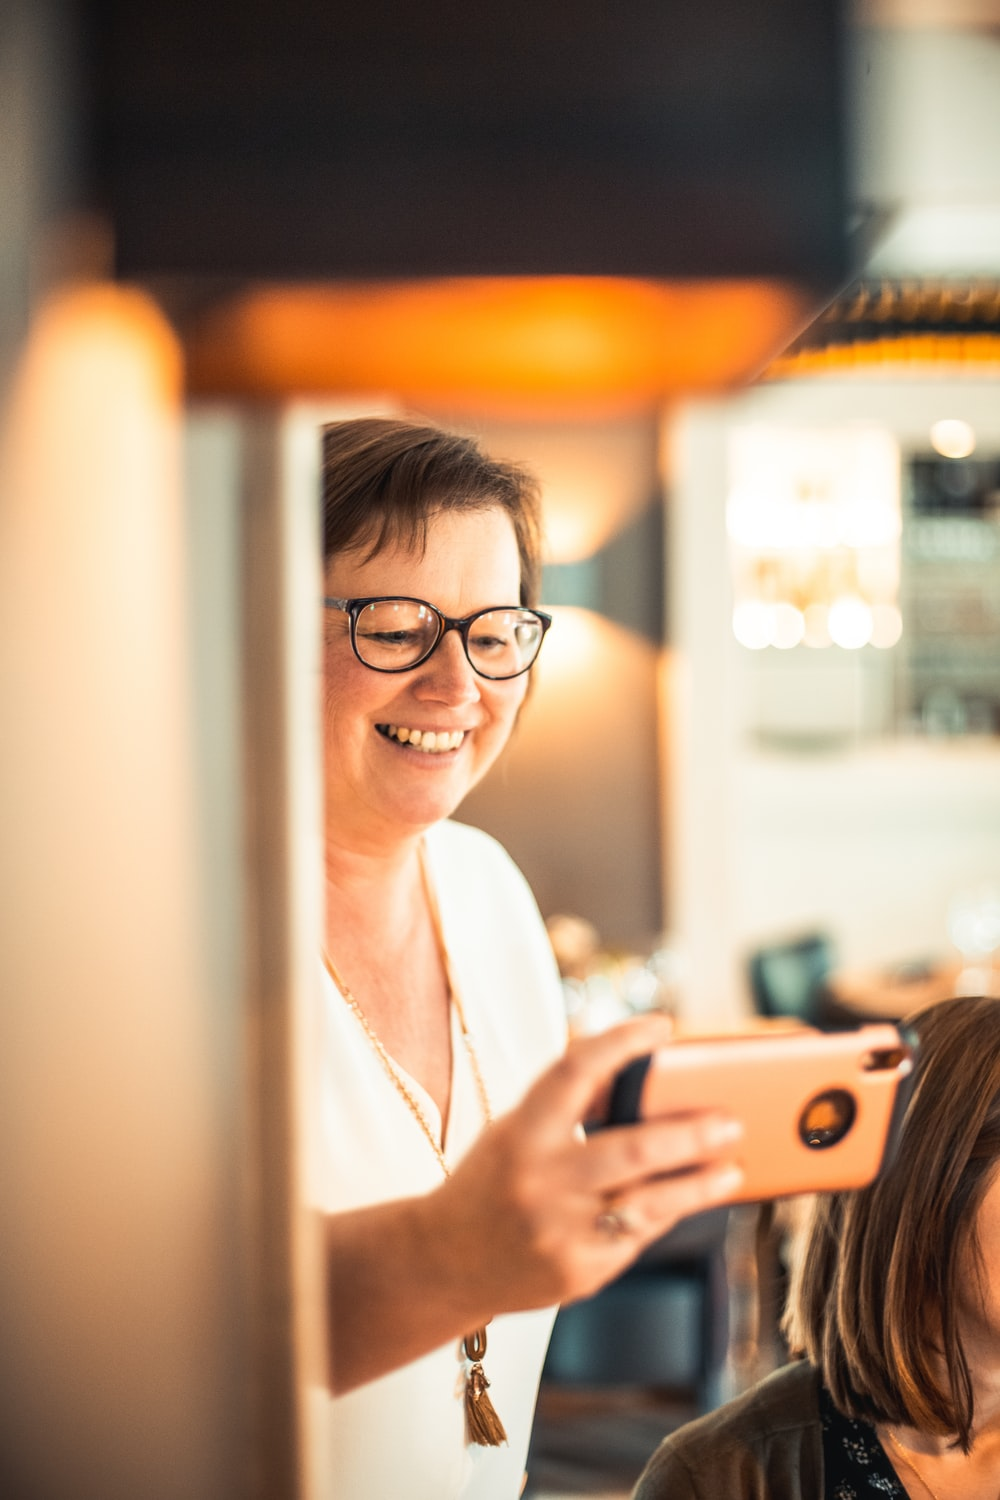 shallow focus photo of woman in white V-neck shirt using iPhone